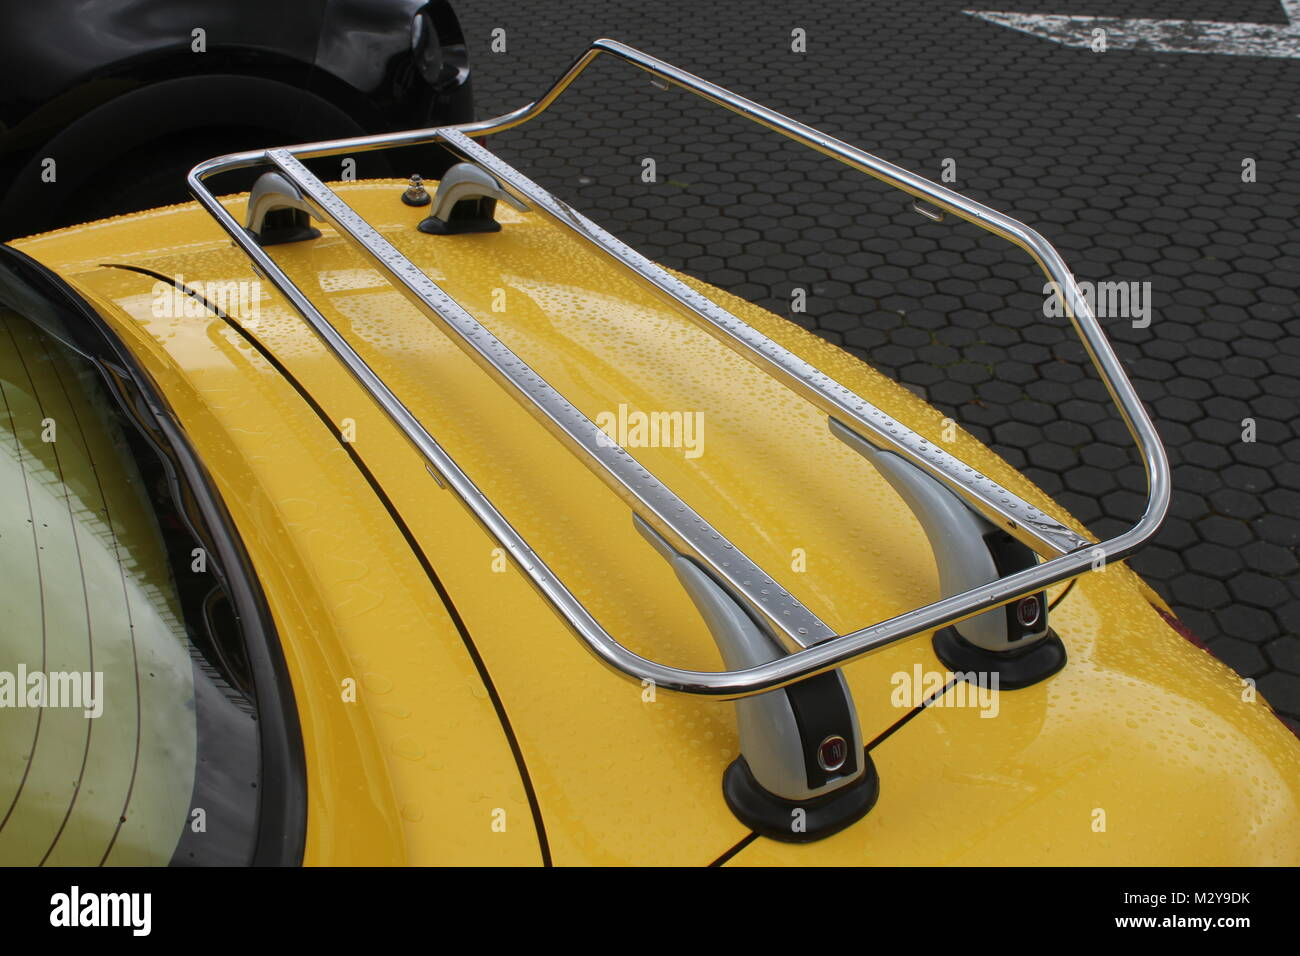 Car Luggage Carrier Stock Photos Amp Car Luggage Carrier Stock Images Alamy